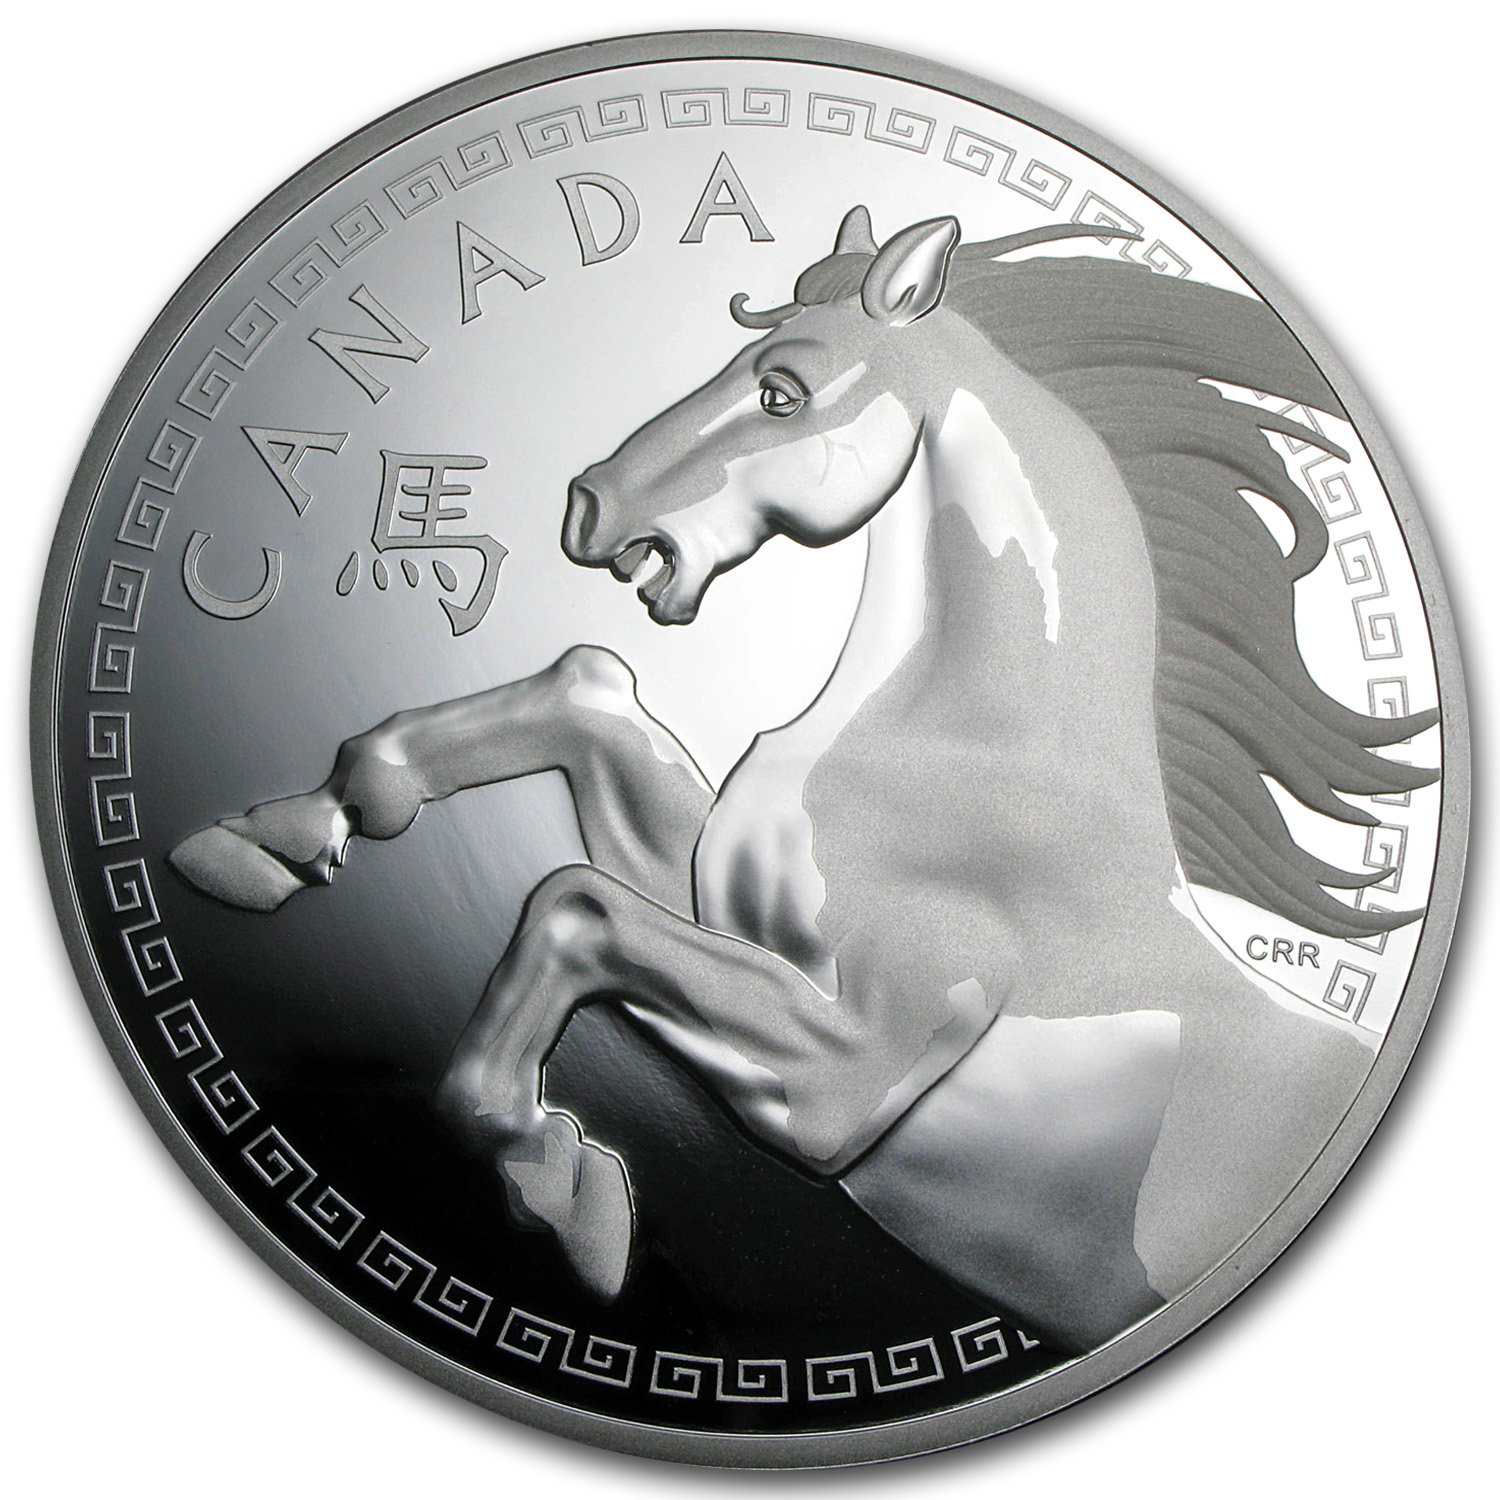 2014 Canada 1 kilo Silver $250 Lunar Year of the Horse